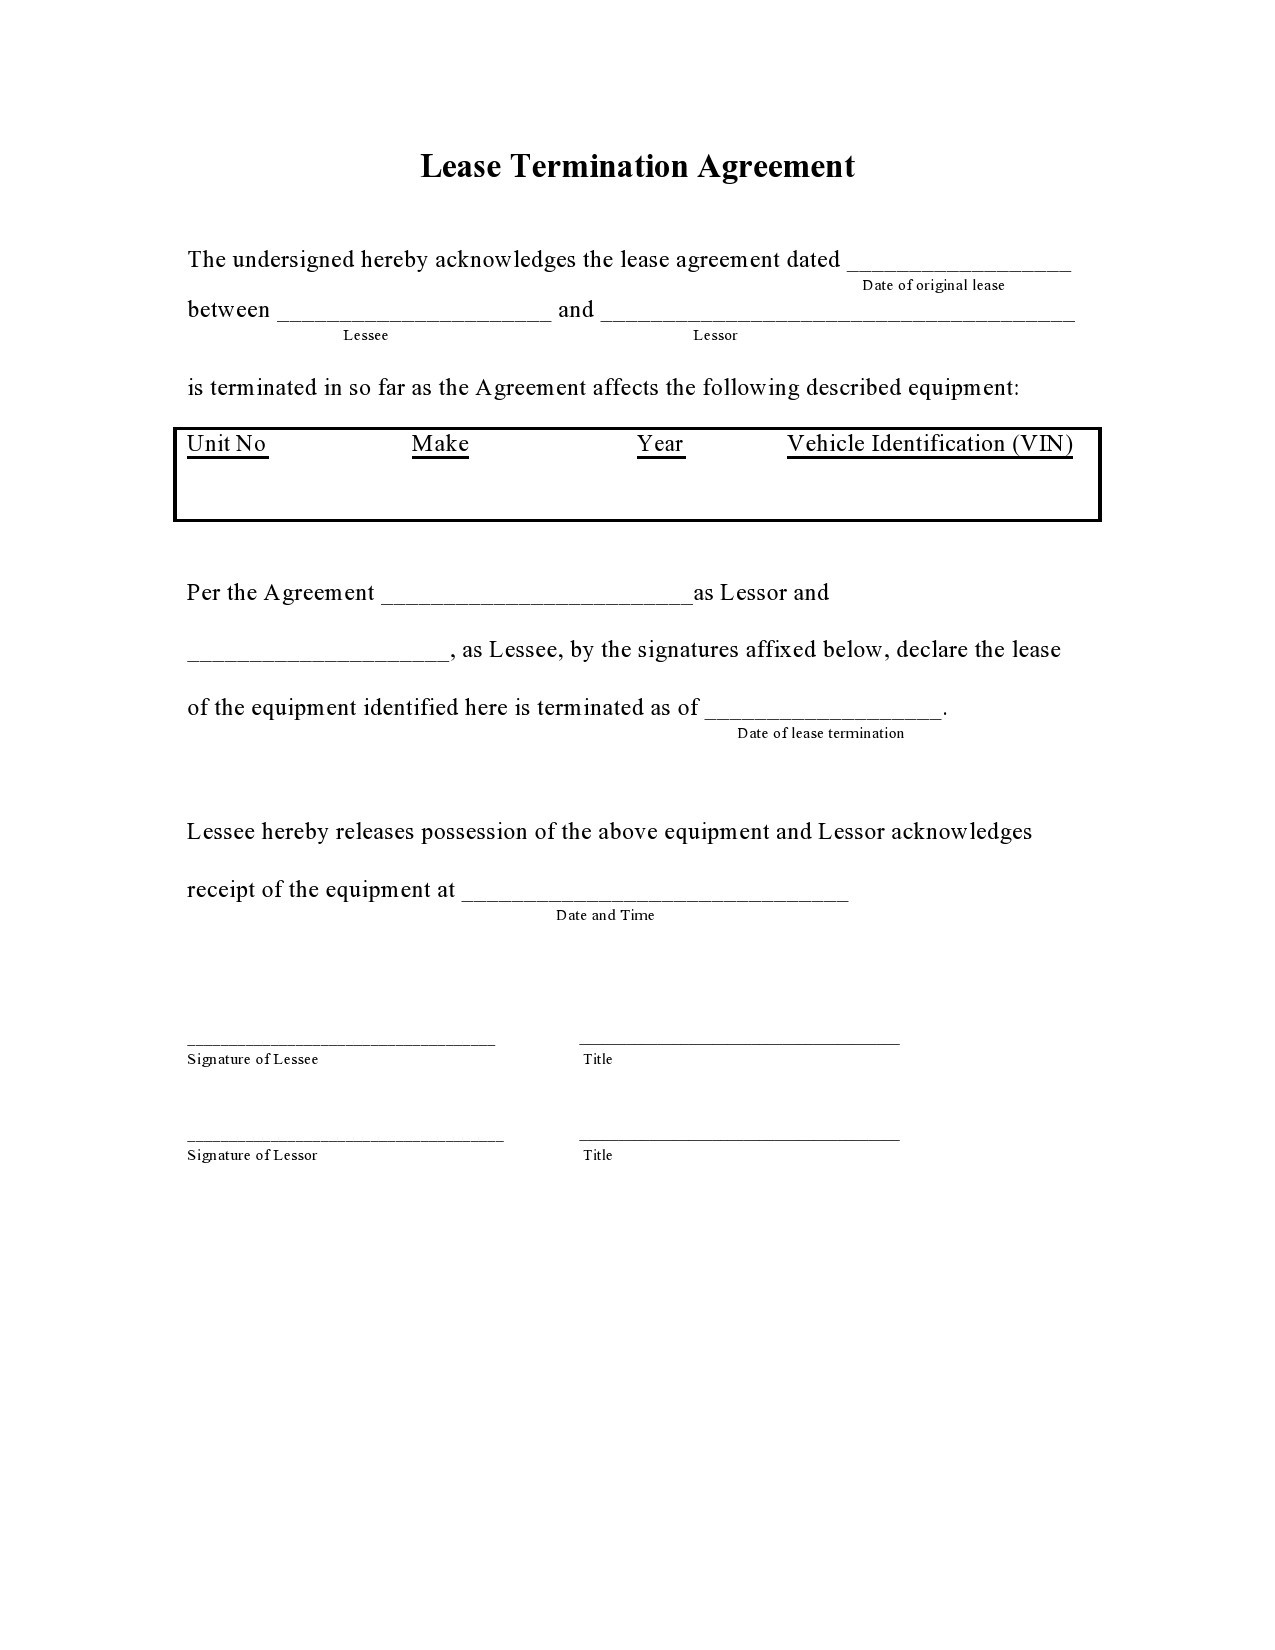 Free lease termination agreement 01